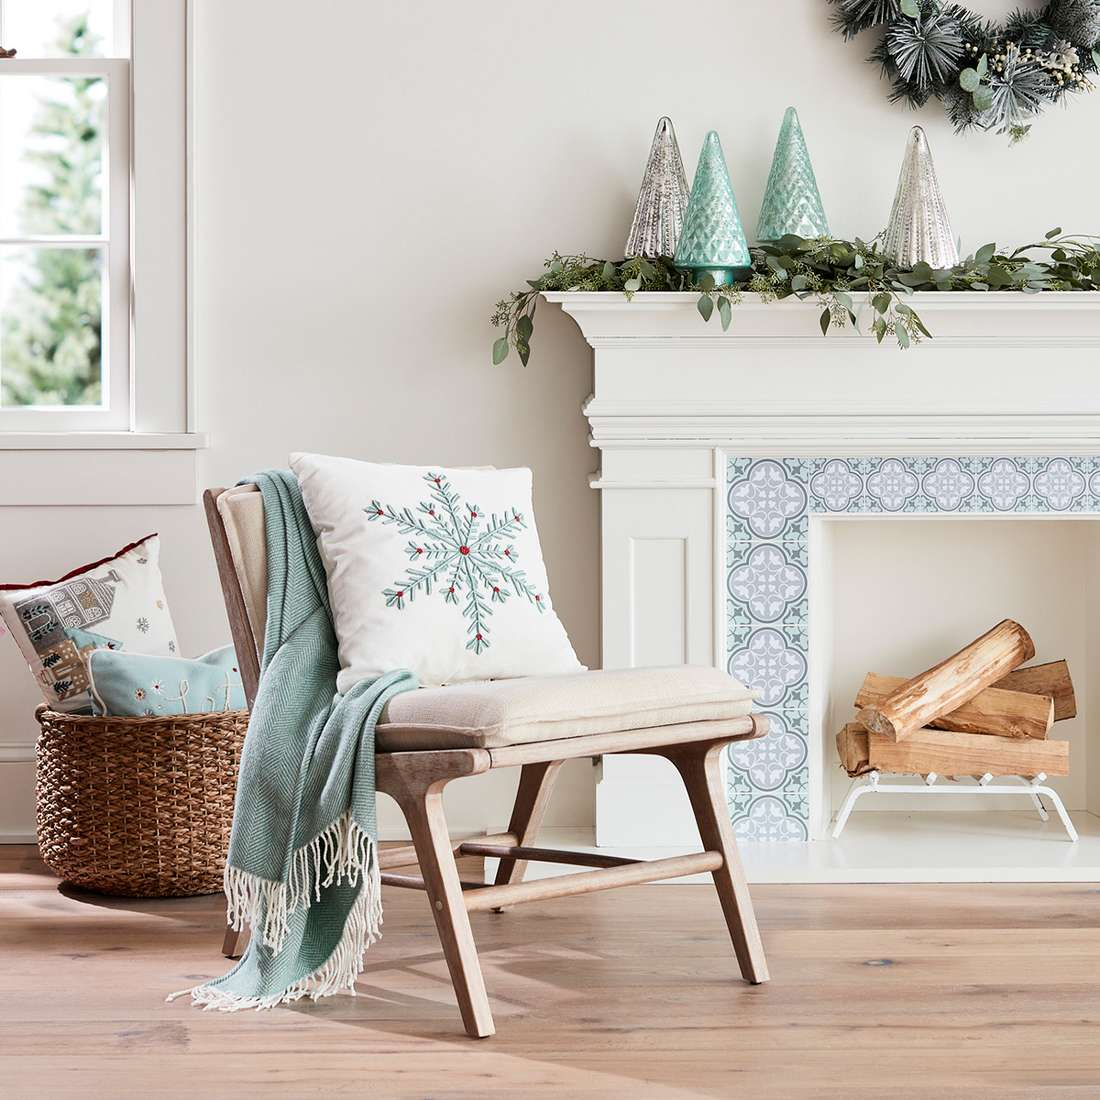 Kids table and chair set target home design ideas - Living Room